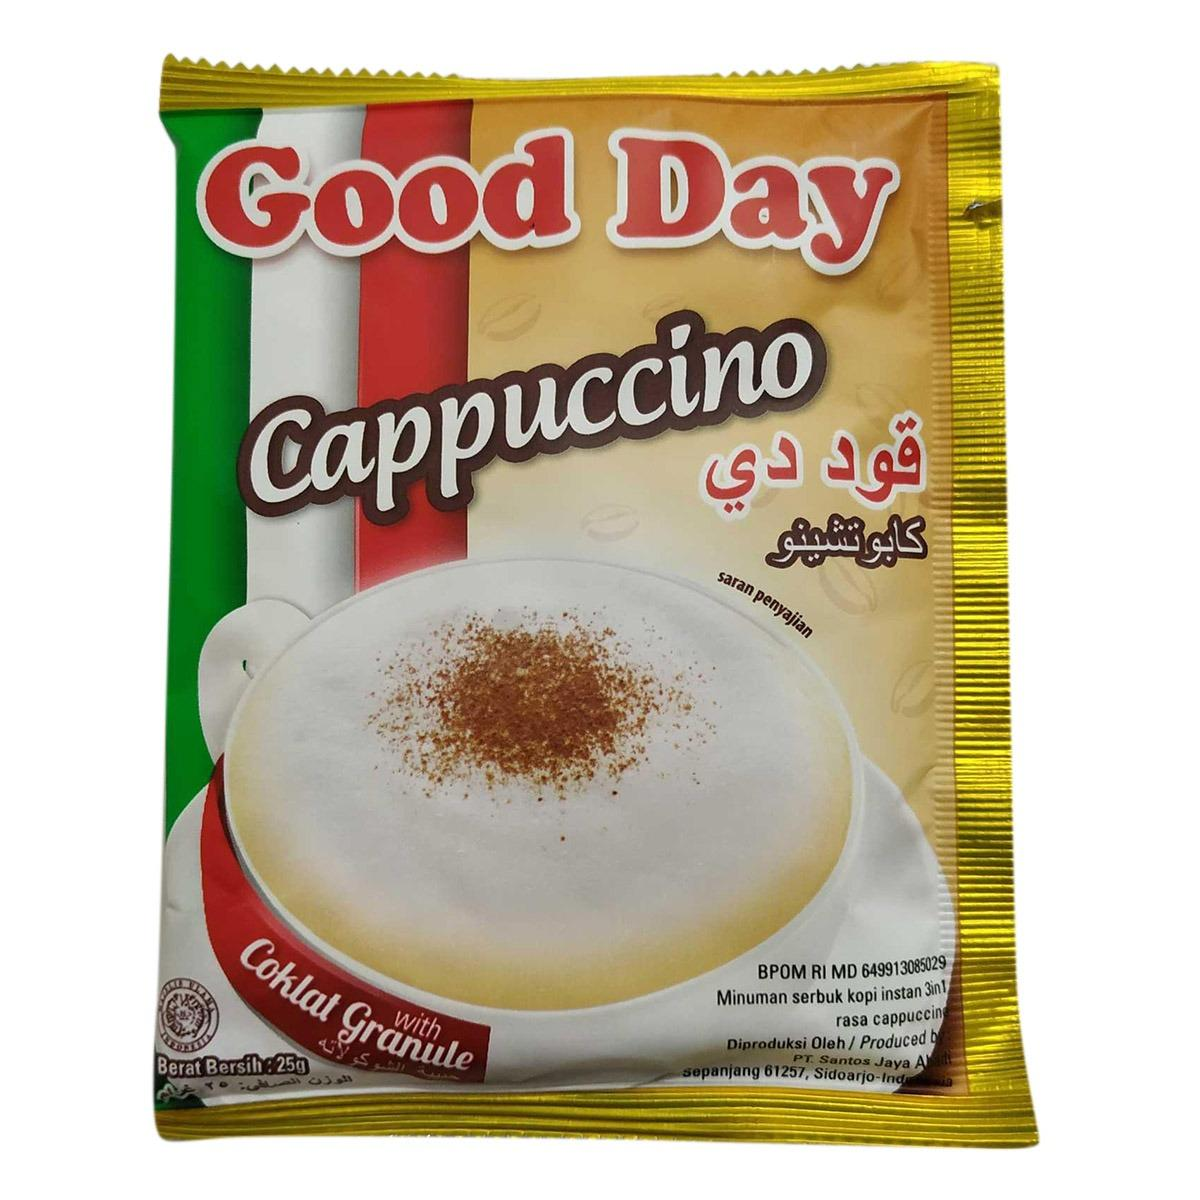 Good Day Cappuccino 3 in 1 Instant Coffee- 25gm